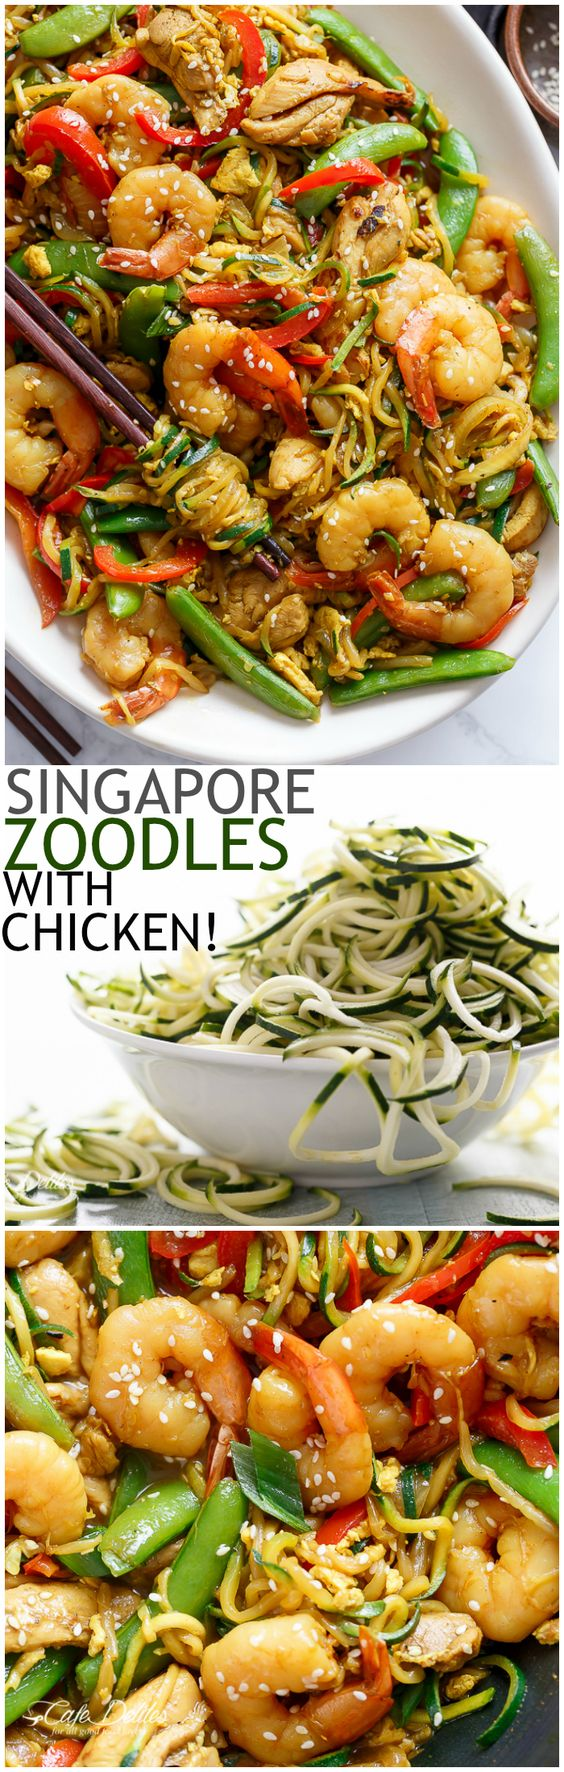 A twist on the classic Singapore Noodles -- same classic flavours only low carb and low calories with Zoodles! | http://cafedelites.com